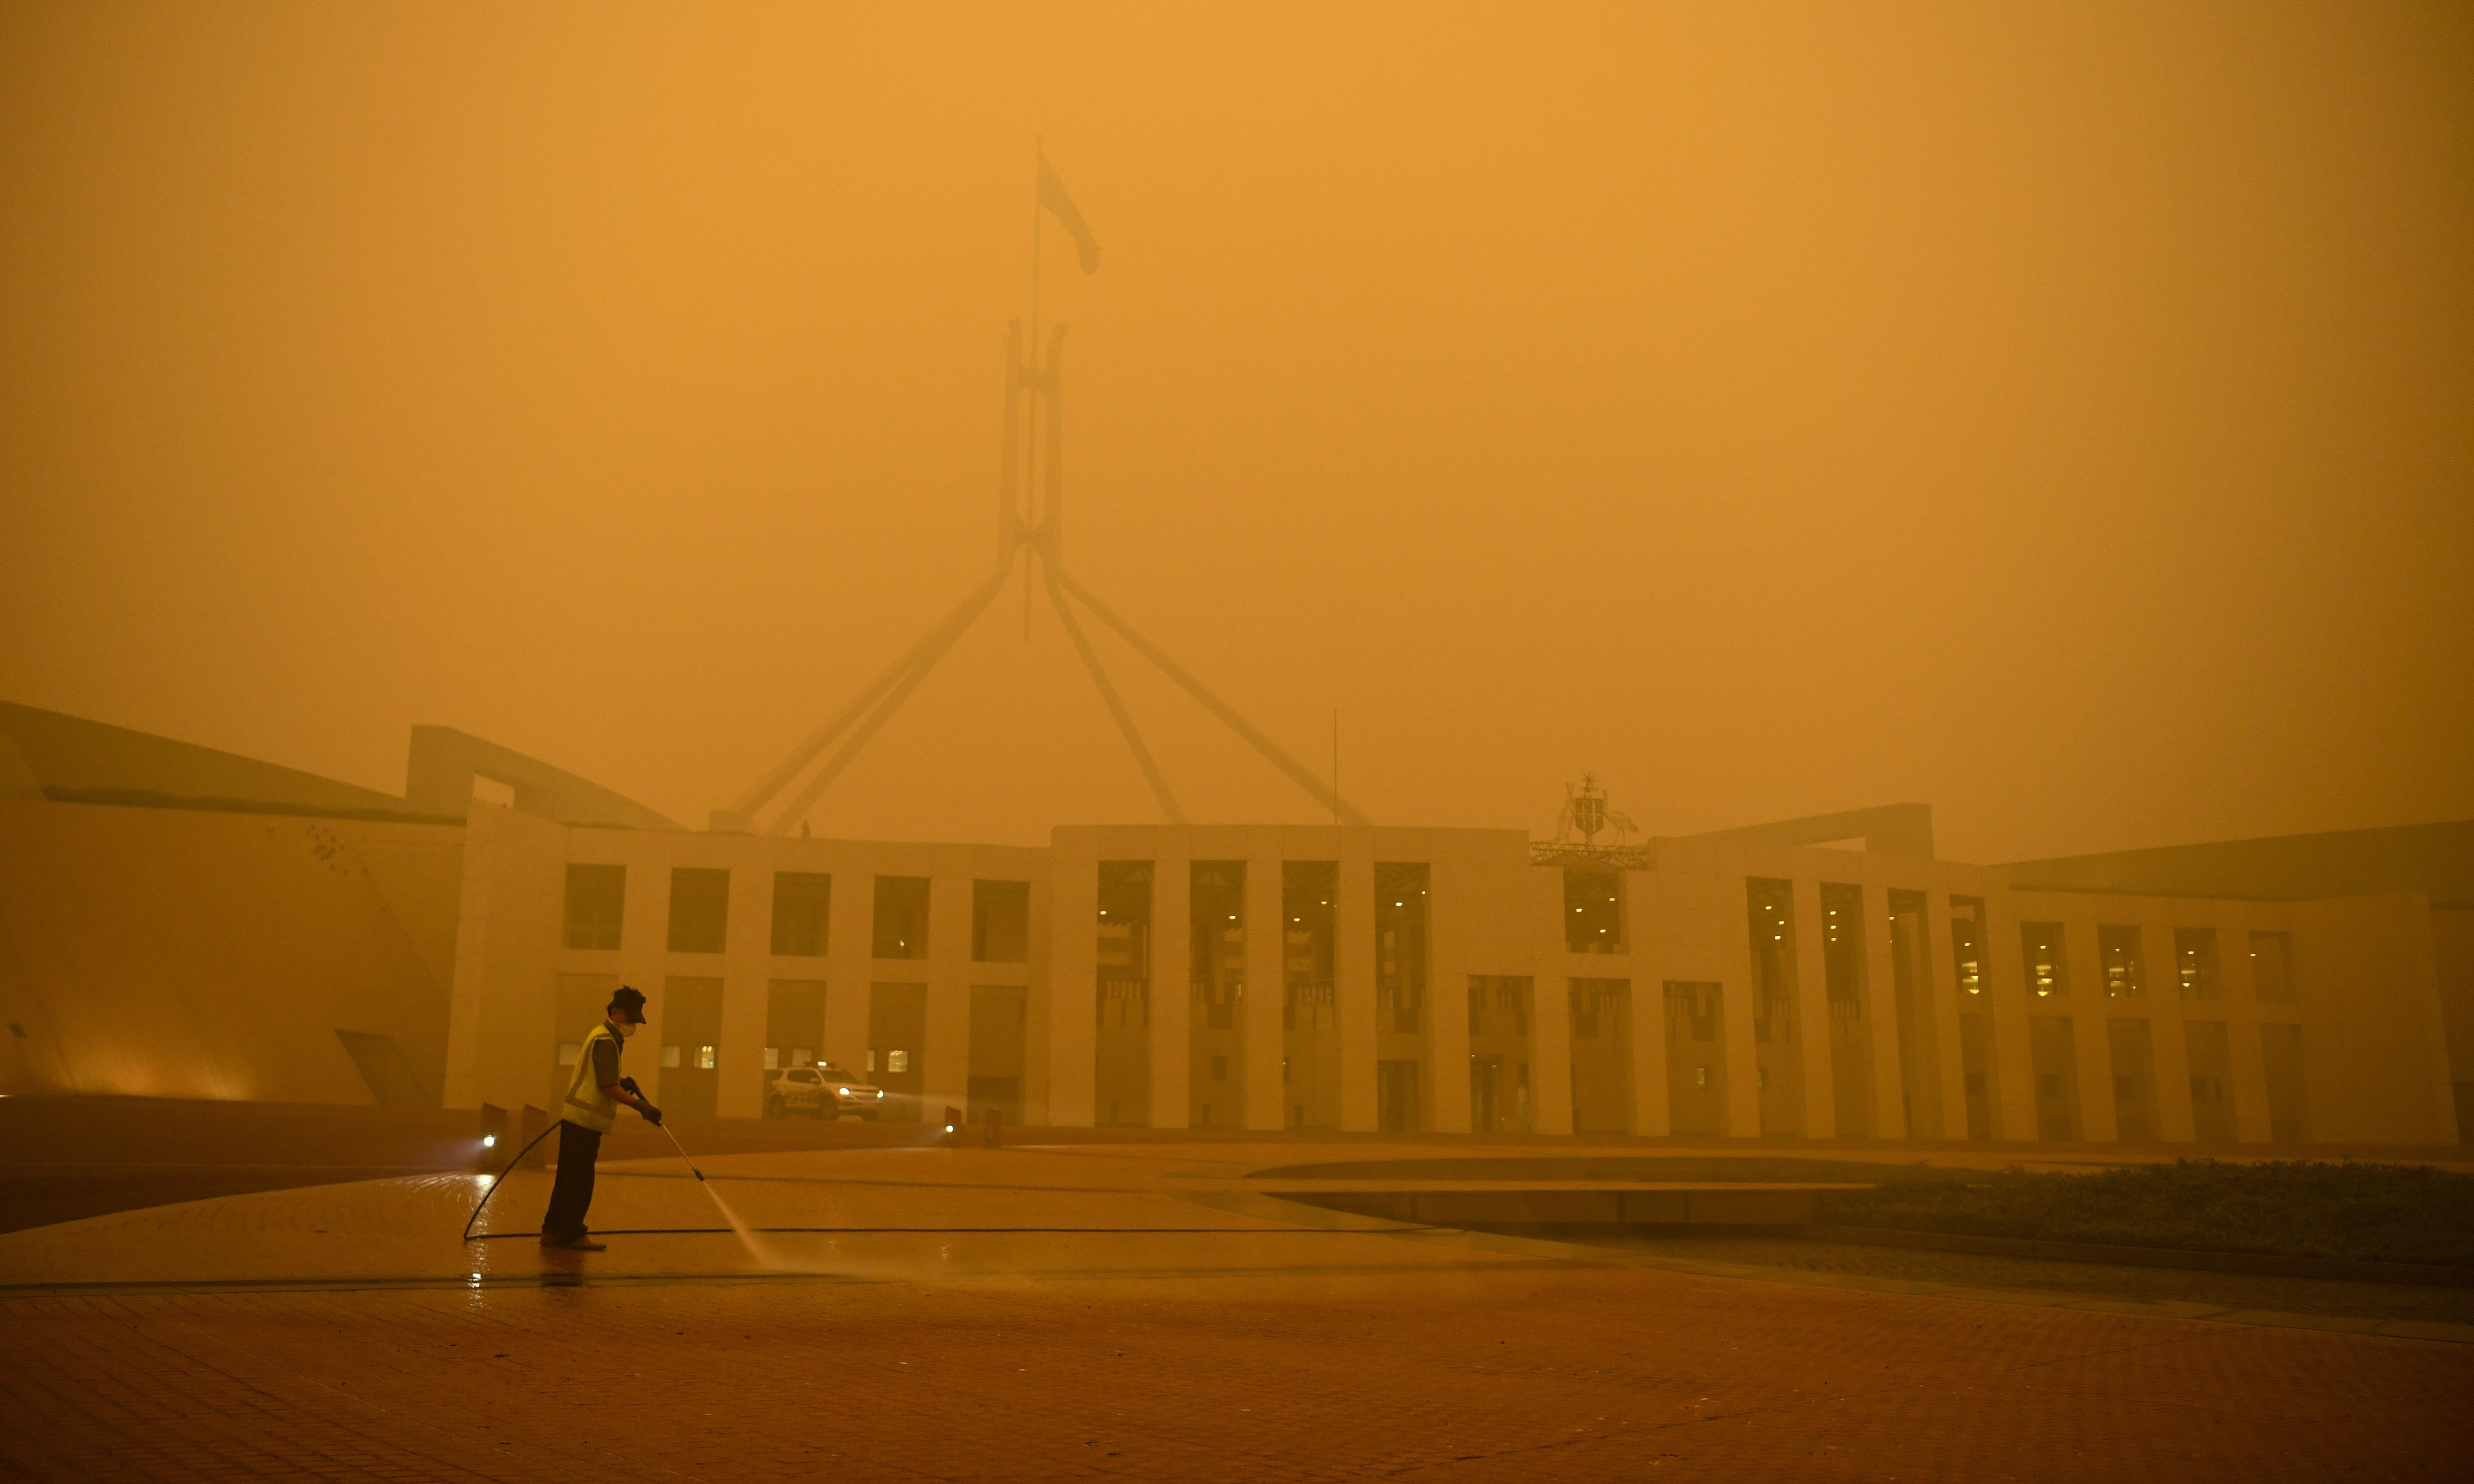 Now that climate change is irrefutable, denialists like Andrew Bolt insist it will be good for us